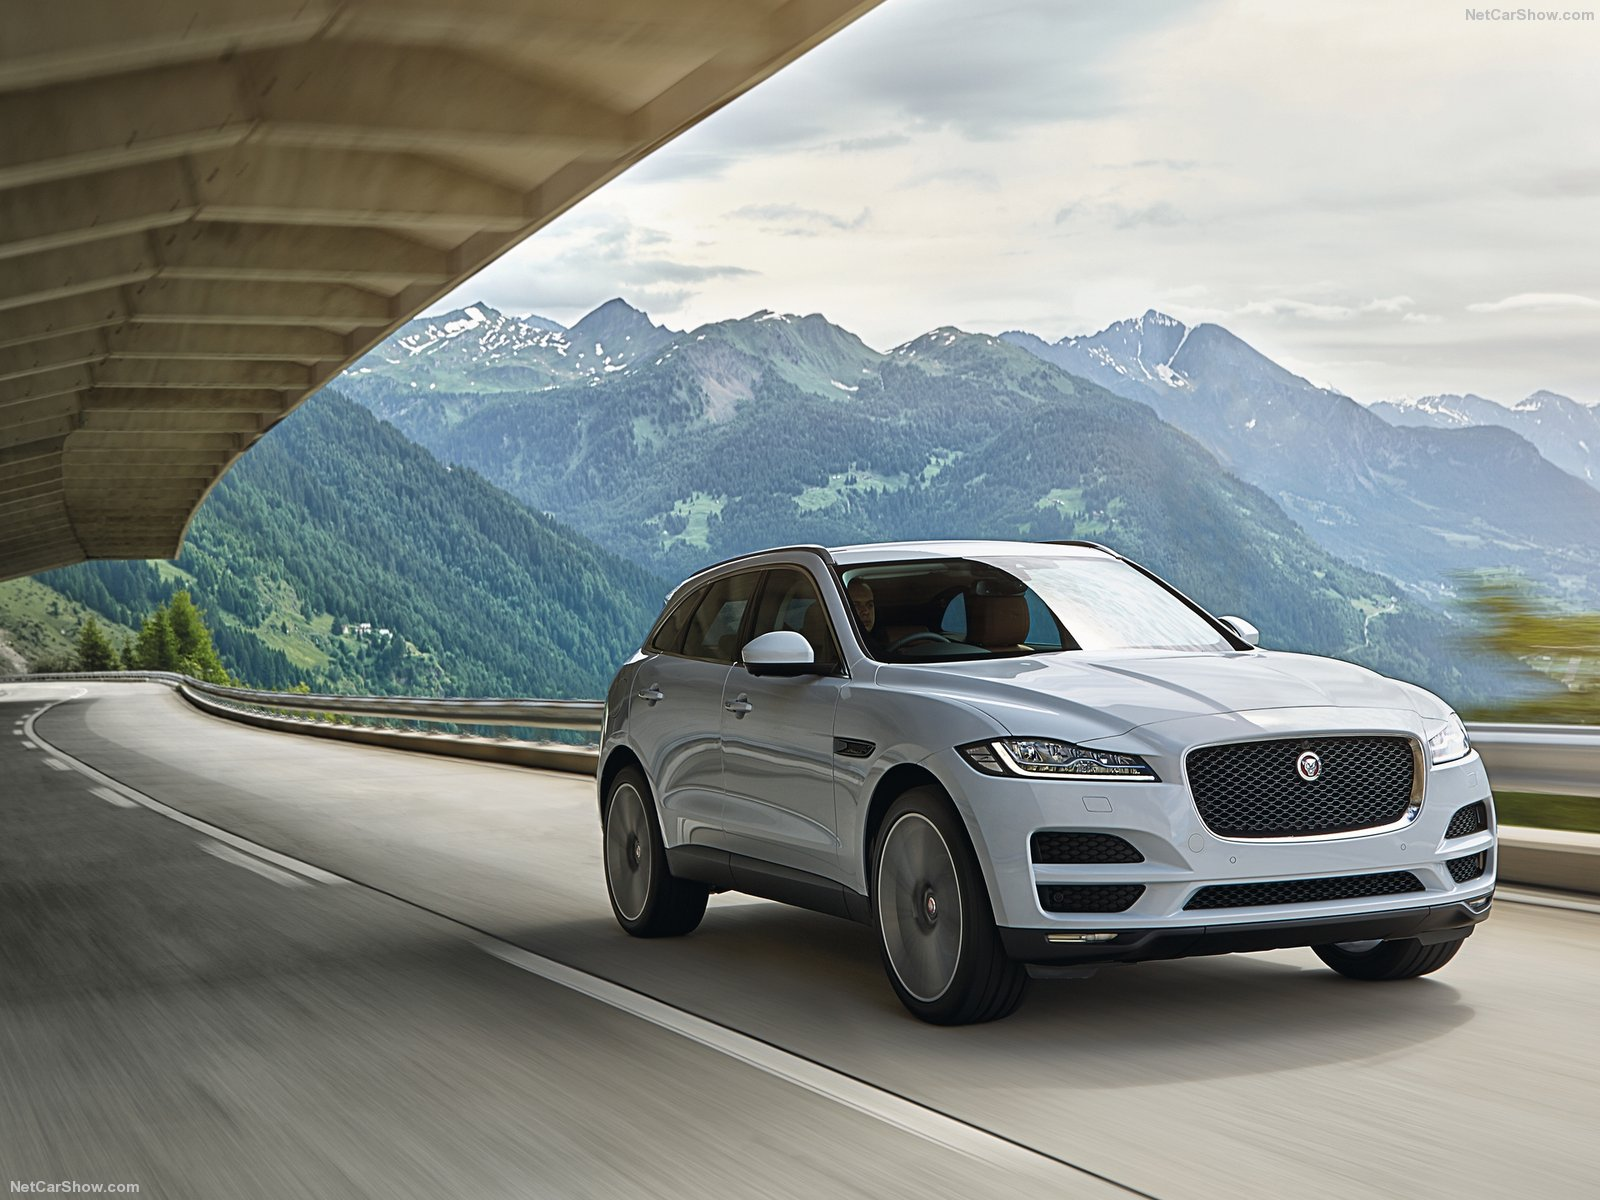 2017 jaguar f pace us prices revealed more expensive entry level version than all rivals. Black Bedroom Furniture Sets. Home Design Ideas